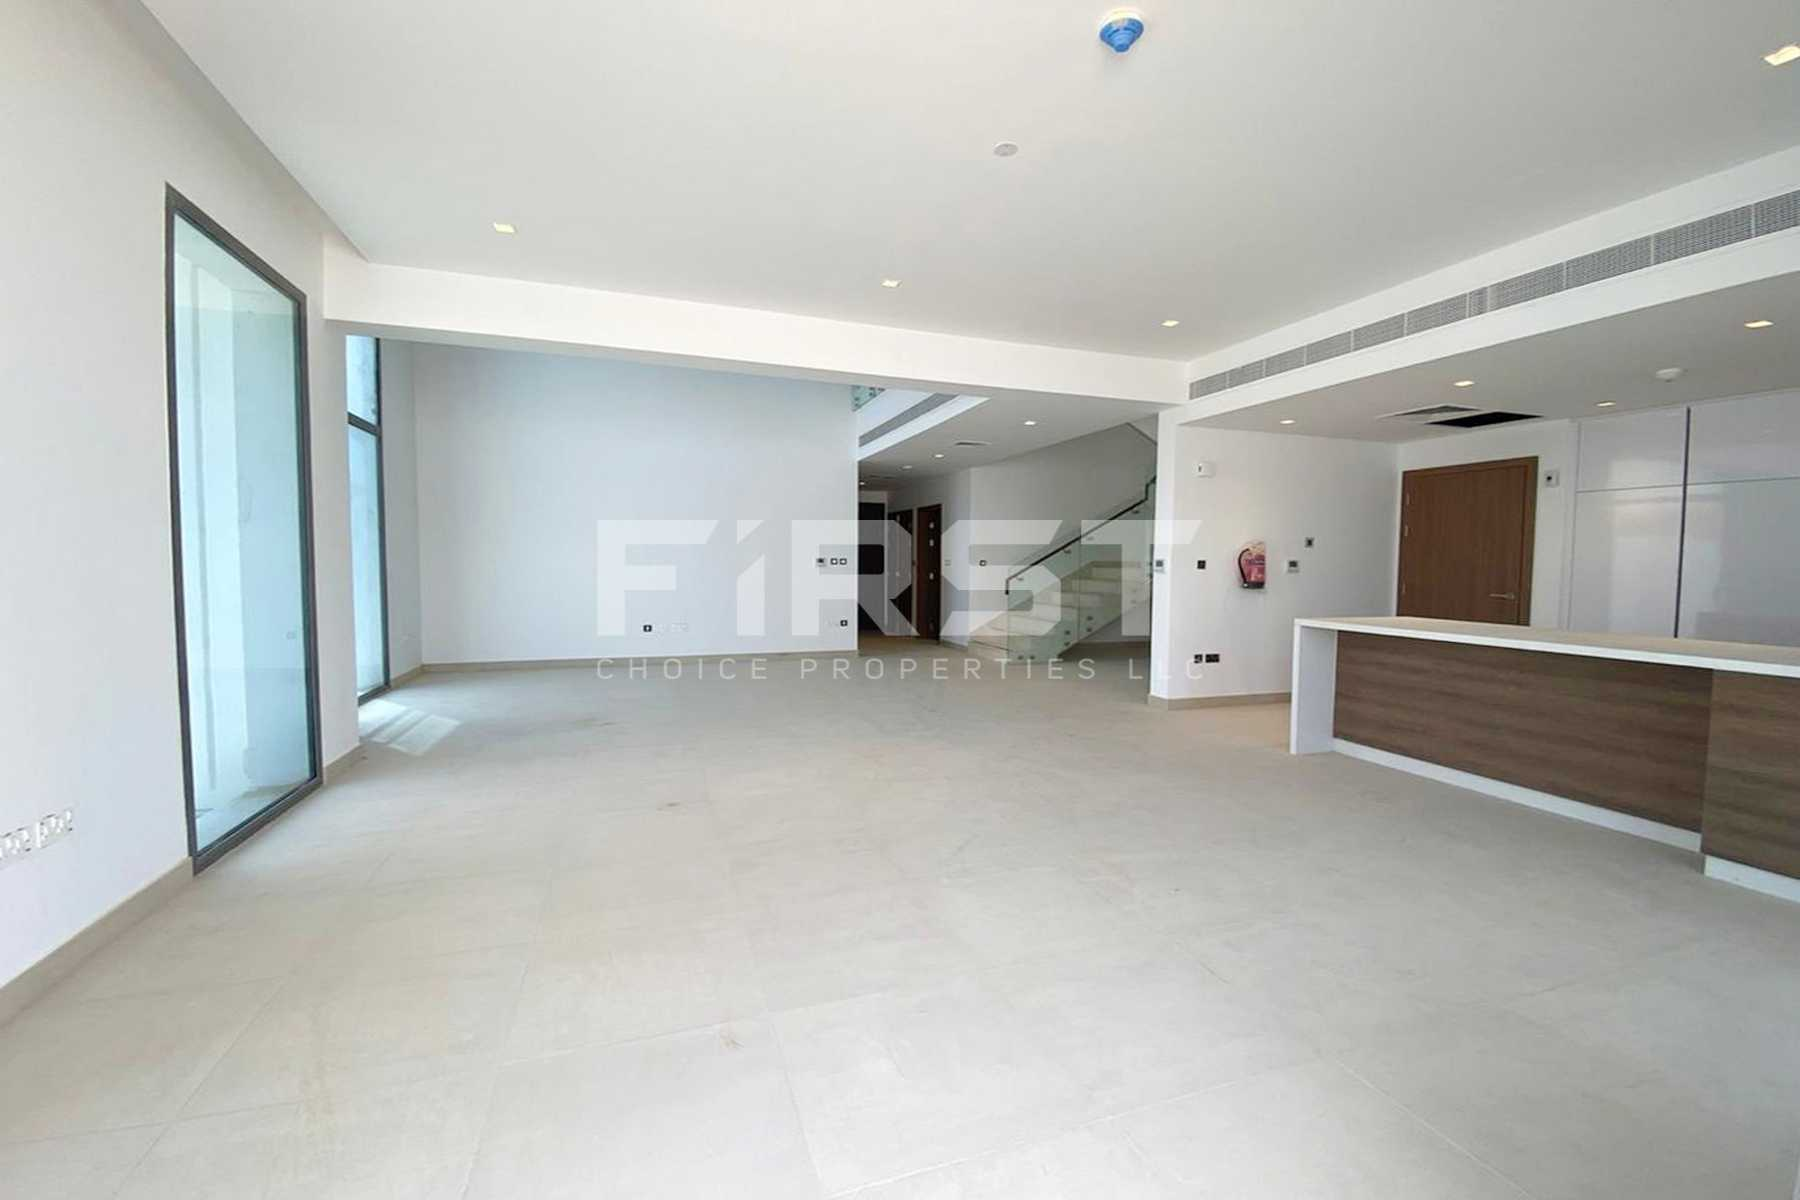 External Photo of 4 Bedroom Duplex Type 4Y in Yas Acres Yas Island Abu Dhabi UAE (6).jpg